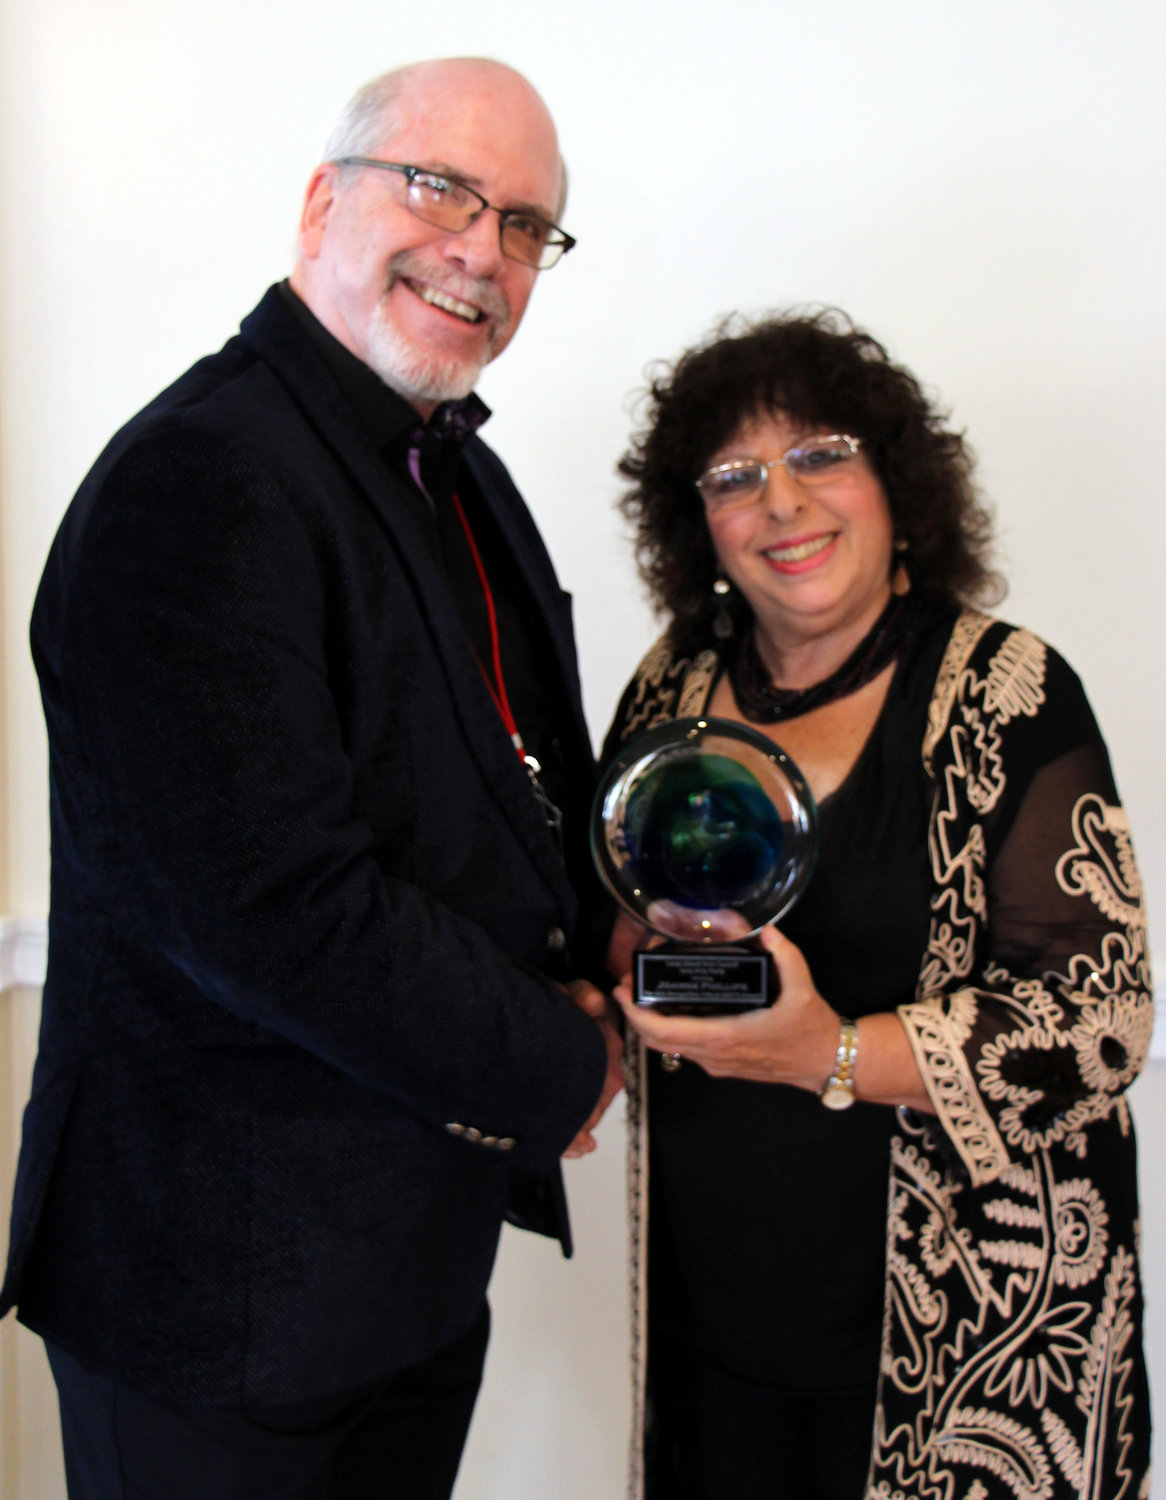 Long Island Arts Council at Freeport Executive Director Laurence Dresner, right, presented Joanne Phillips from Long Beach with the Arts Recognition Tribute Award (ARTY).